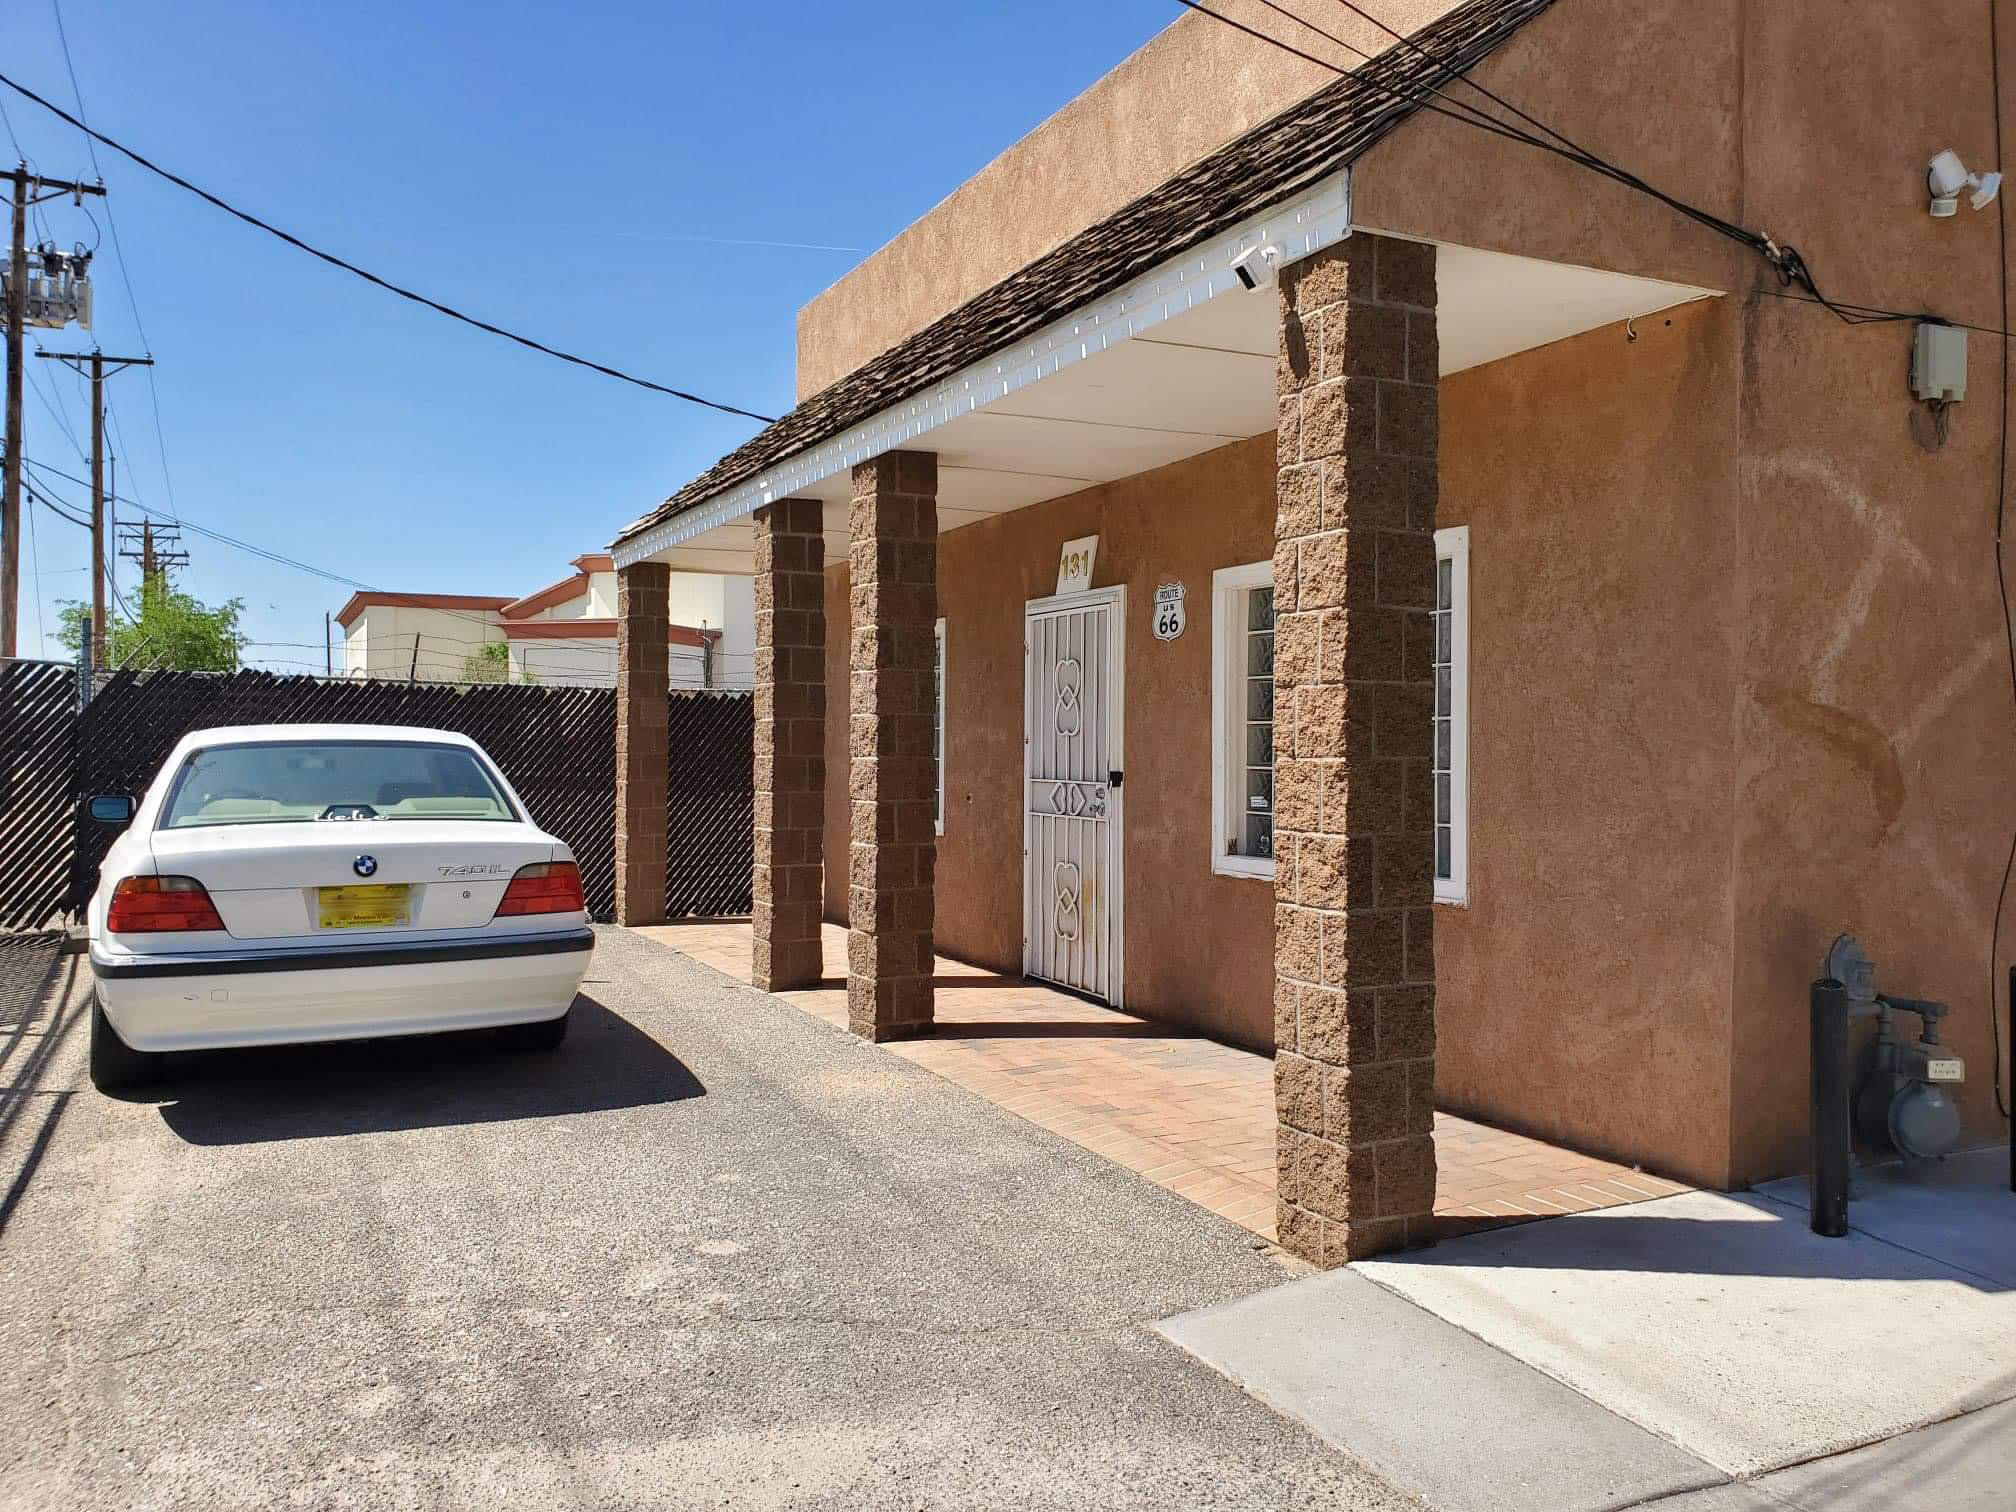 Don't miss your chance to own this unique Live/work shop.  Zoned MX-M, opens up lots of possibilities. Office in the front, apartment in the middle, huge shop/Garage (almost 900 sq ft in the back with car lift 220 and 18 foot ceilings.  The apartment is updated with refrigerated air/heat units, washer and dryer, kitchen, stained concrete for easy clean up. The office has a small full kitchen and 3/4 bath and washer and dryer, and a possible bedroom.  Also has a big 19x10 shed attached on the rear.  Lots of possibilities with this one. Reach out quick to a broker to buy this place.Square foot includes the shop, heated and cooled.  Seller will Owner Finance.  REC